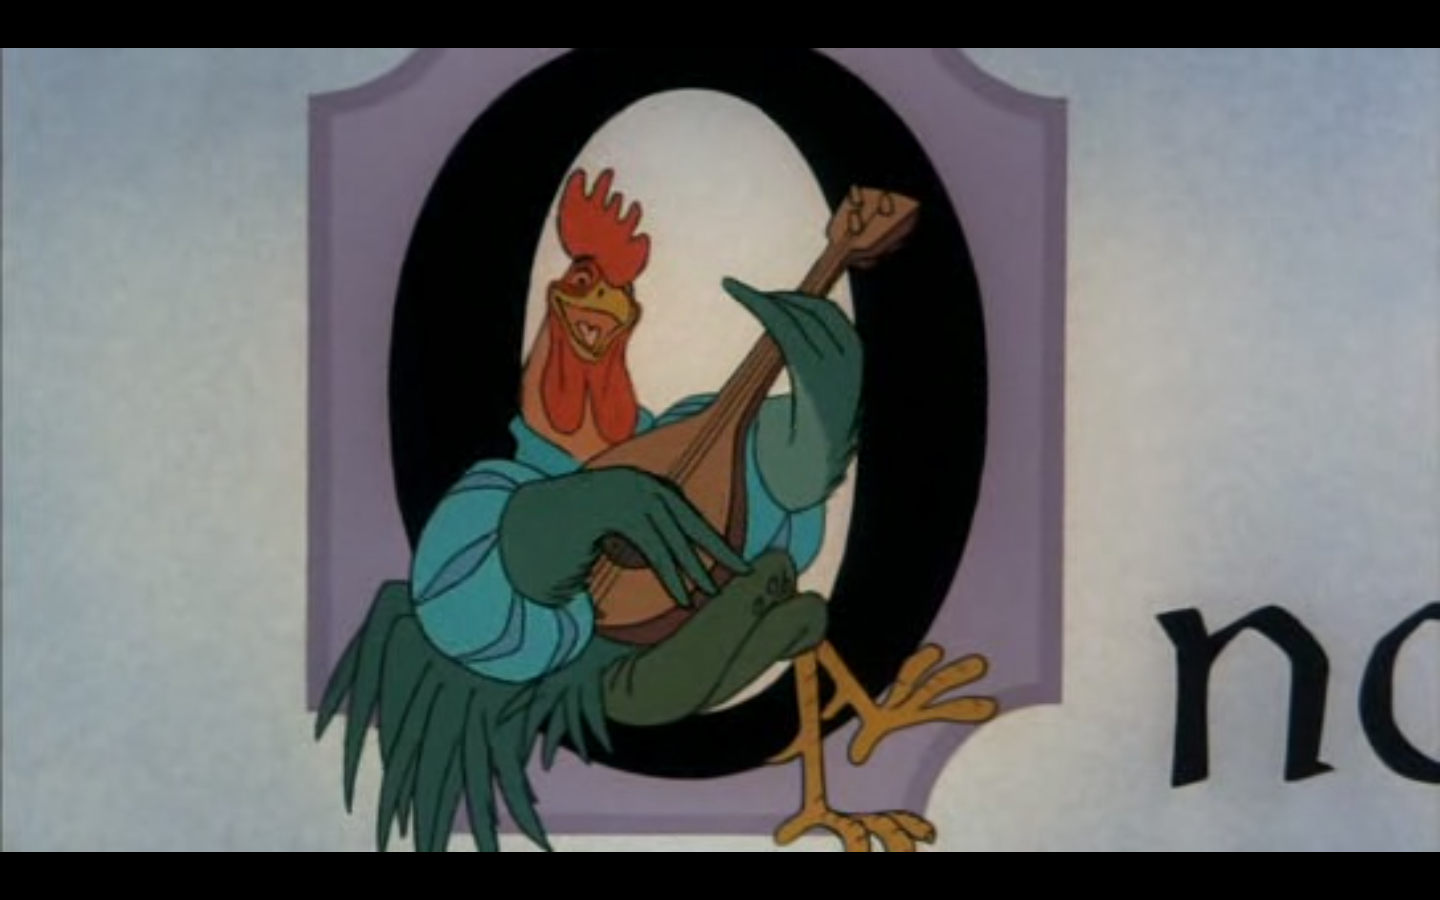 How I narrate science history is more or less shaped by an animated rooster voiced by Roger Miller.